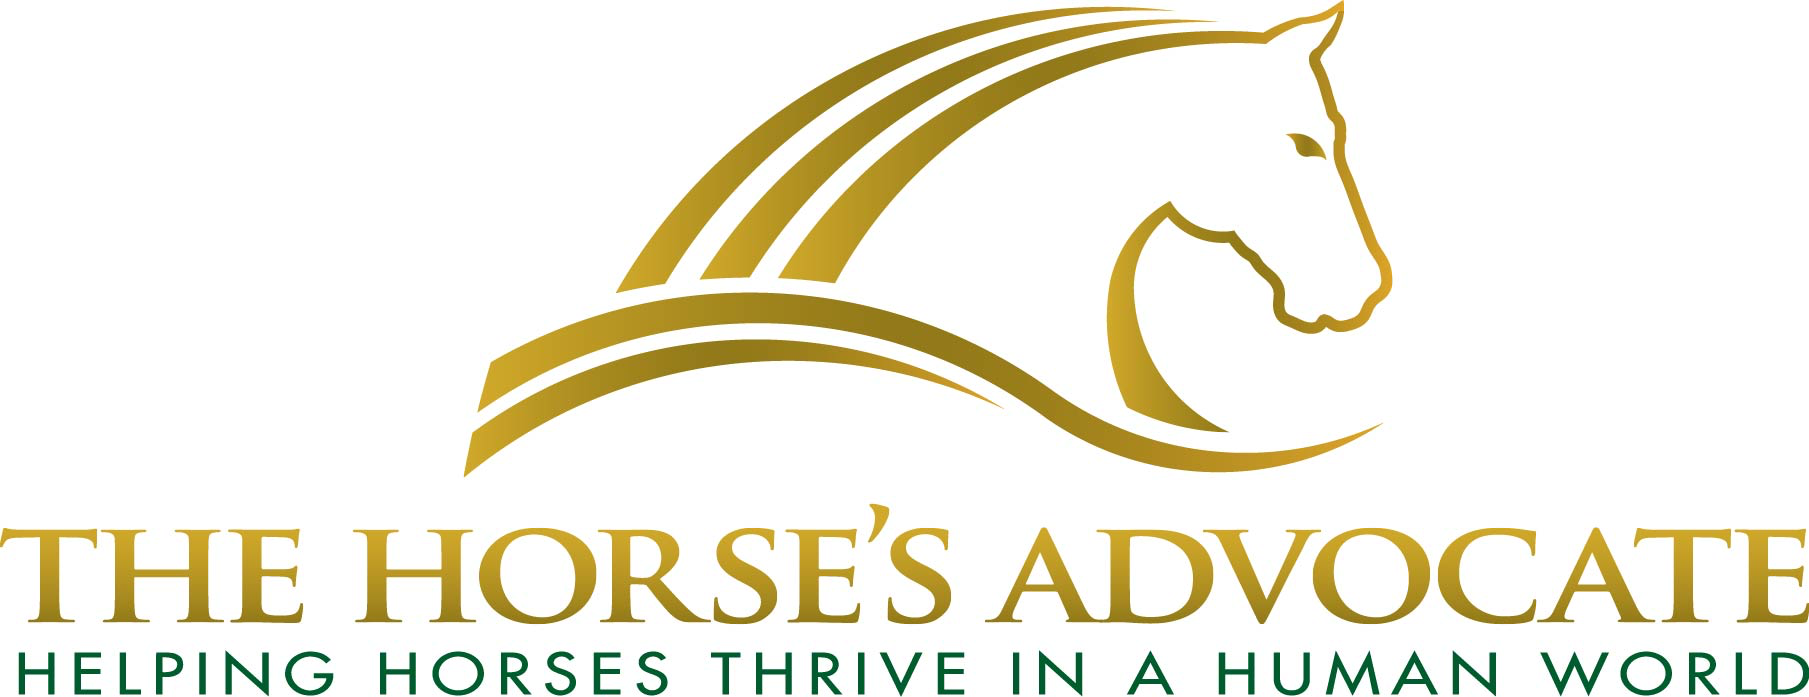 The Horse's Advocate